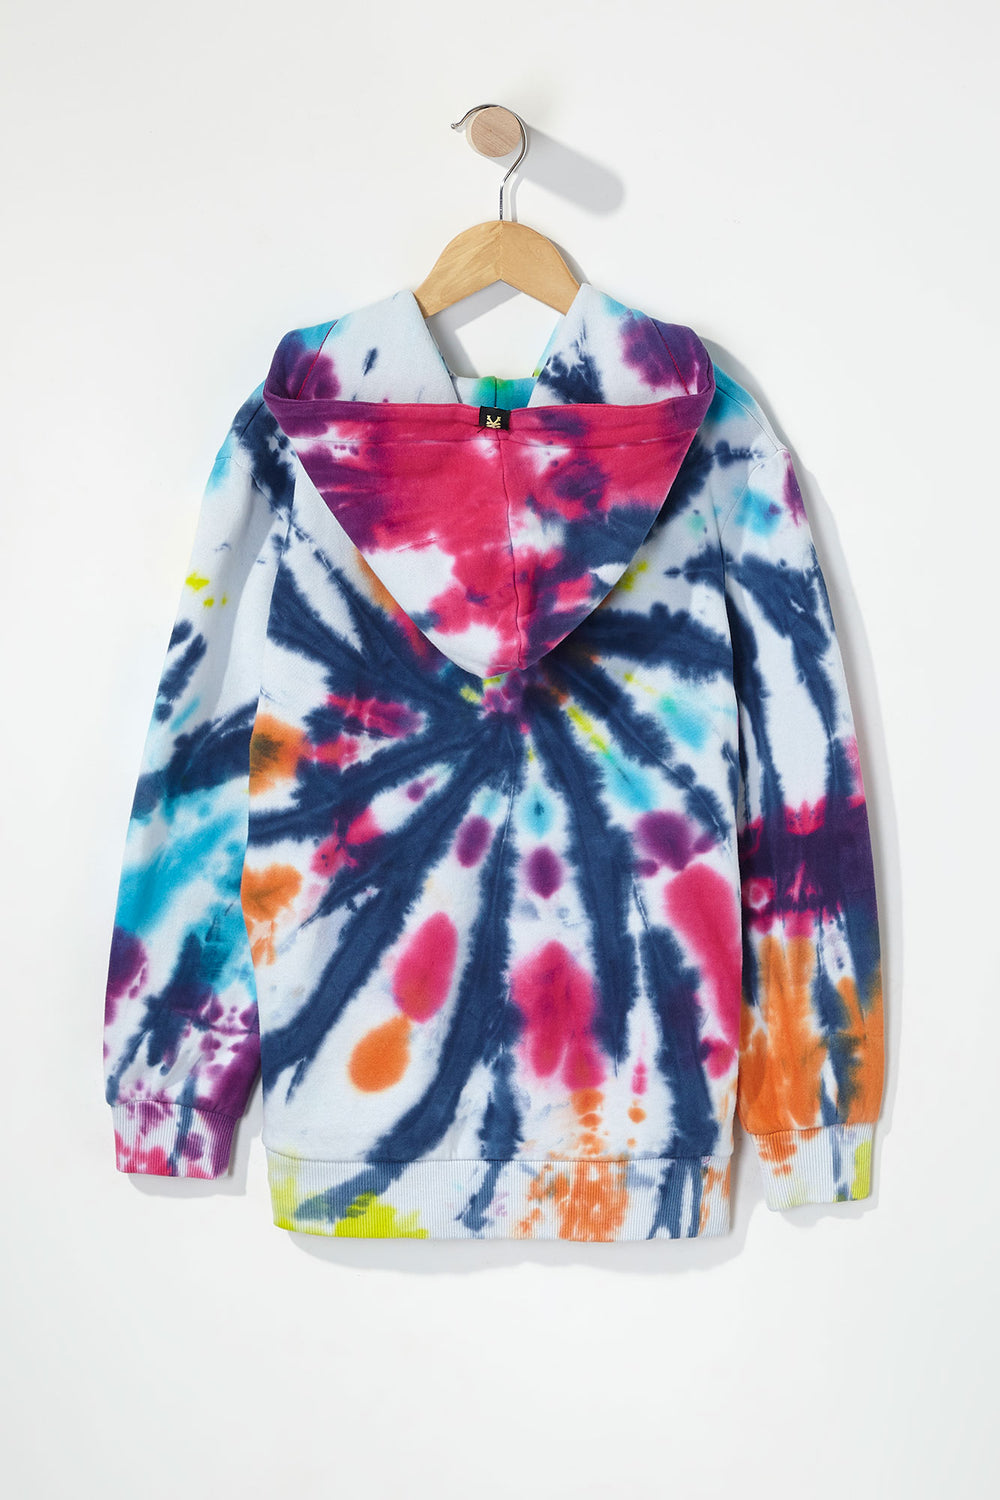 Zoo York Boys Box Logo Tie-Dye Hoodie Multi